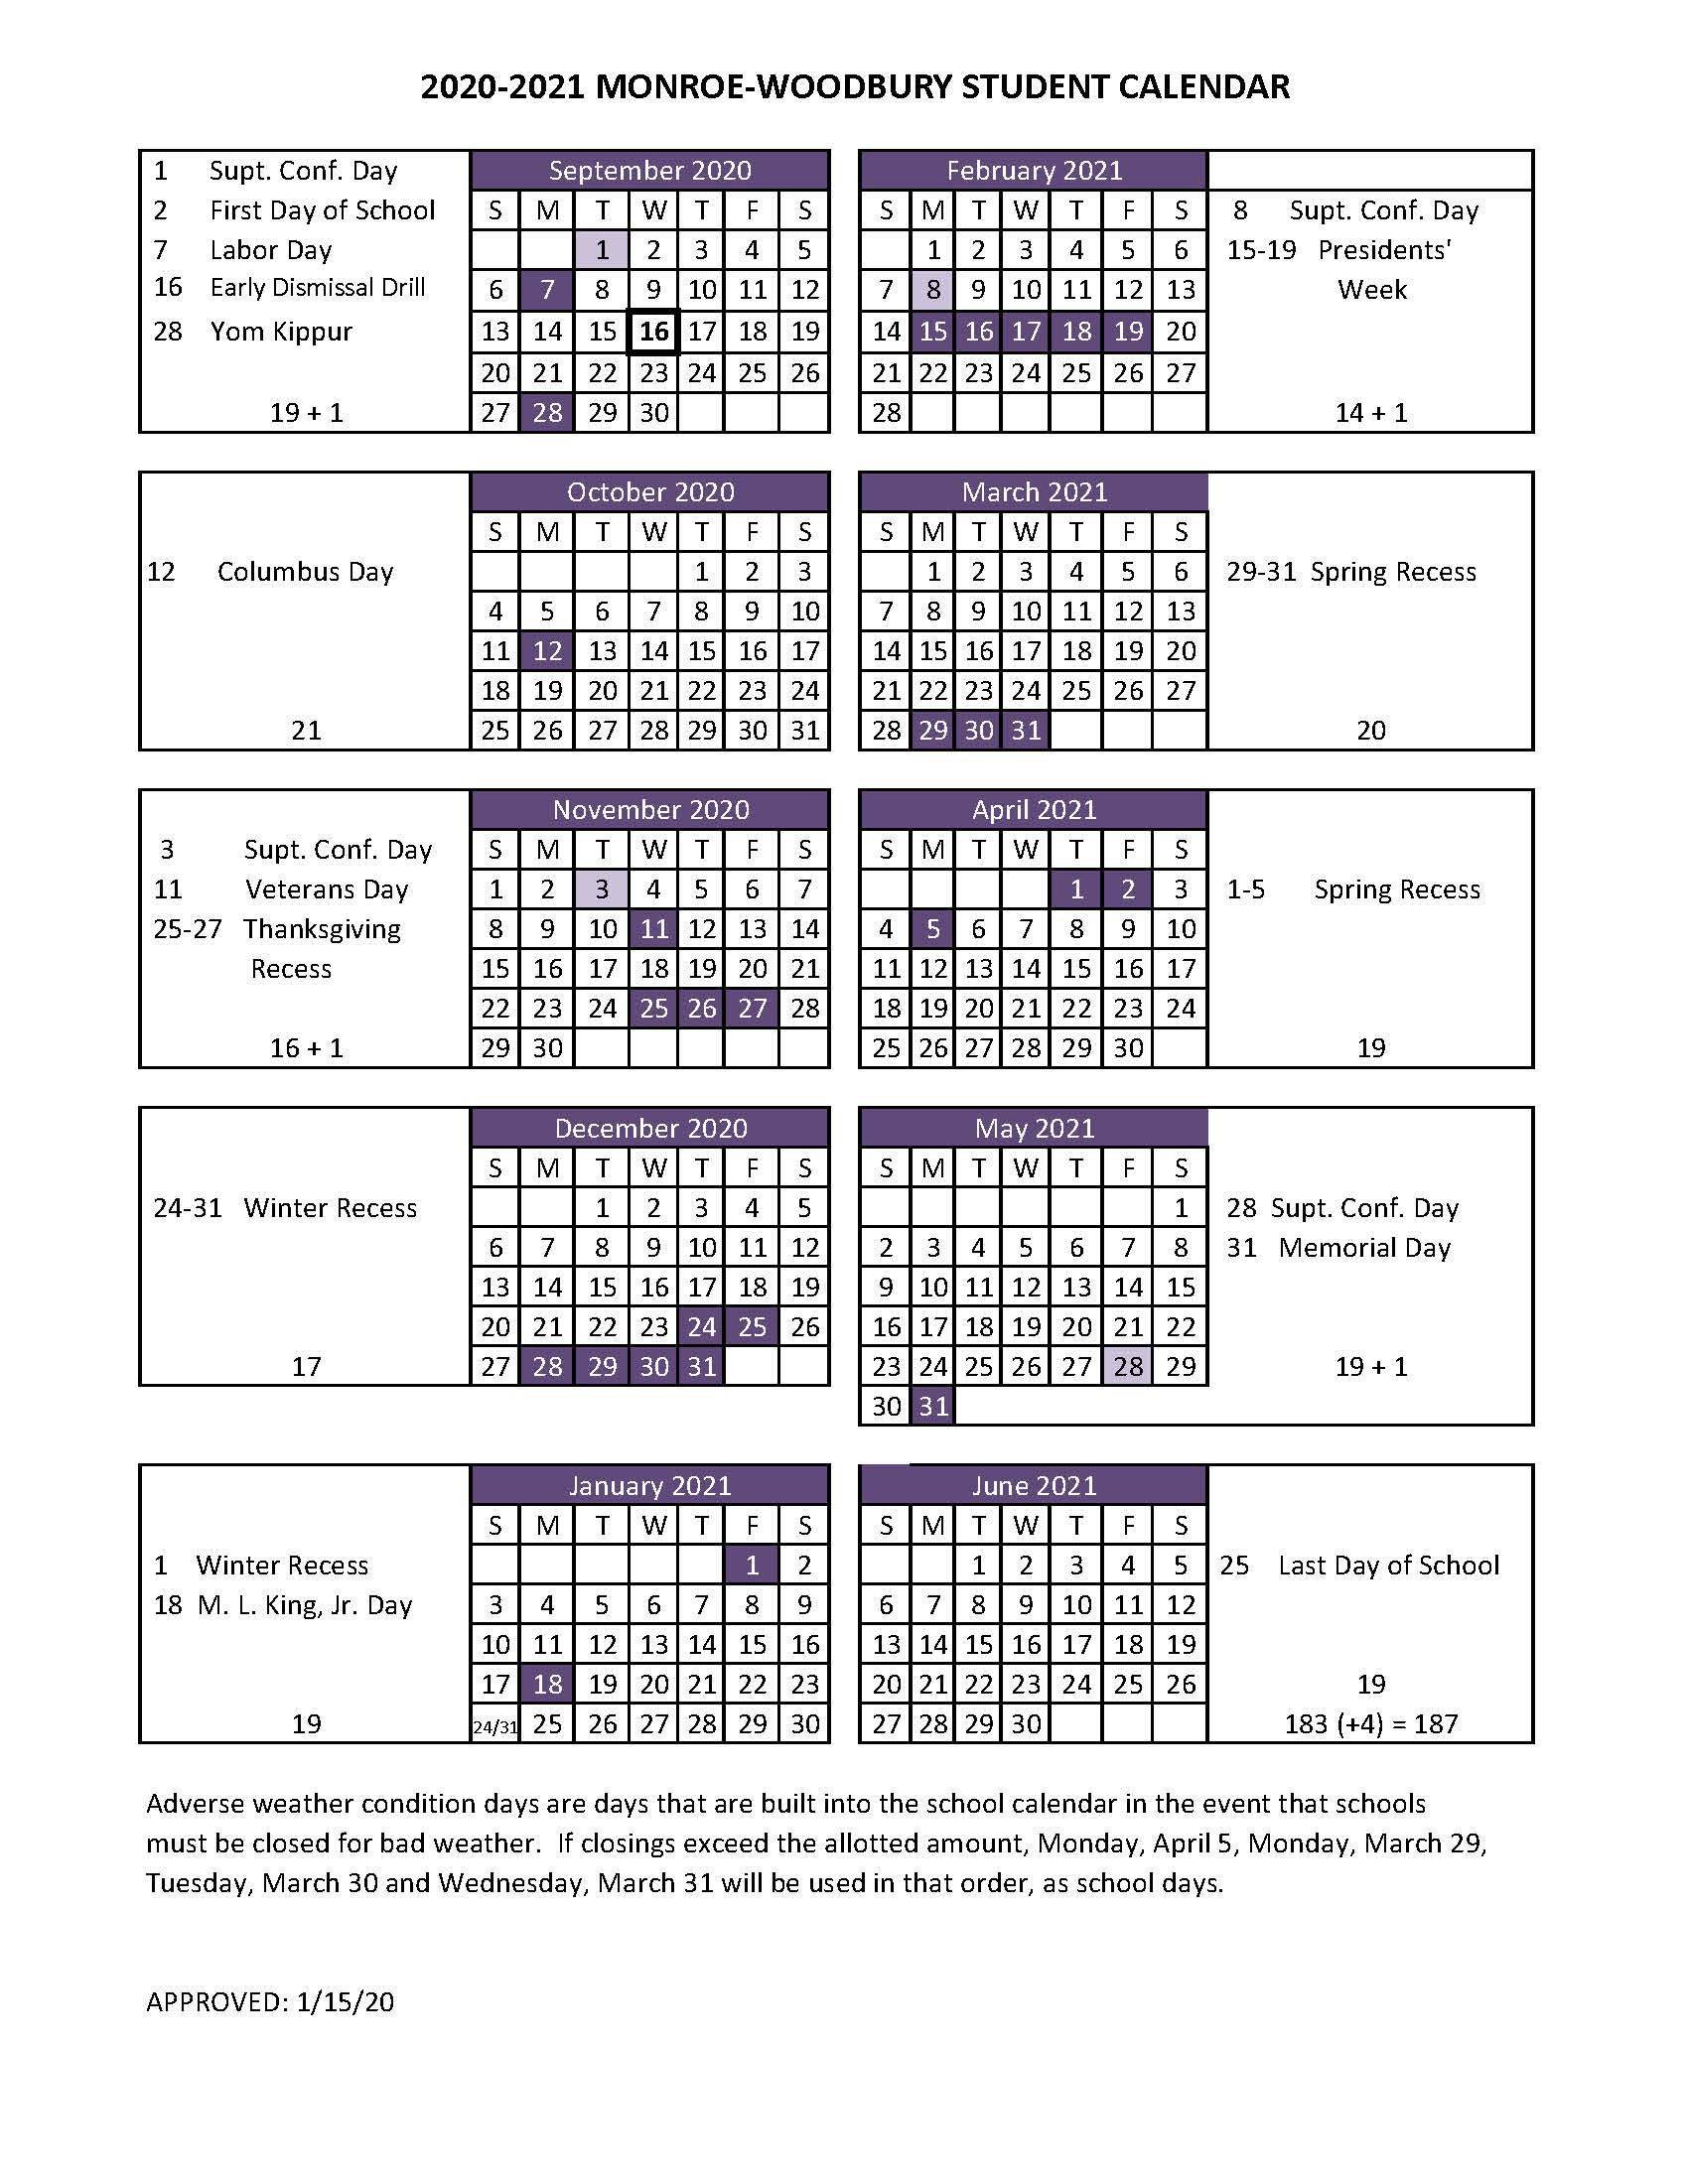 2020 2021 Student Calendar – Monroe Woodbury Central School Within Board Of Education Calendar Nyc